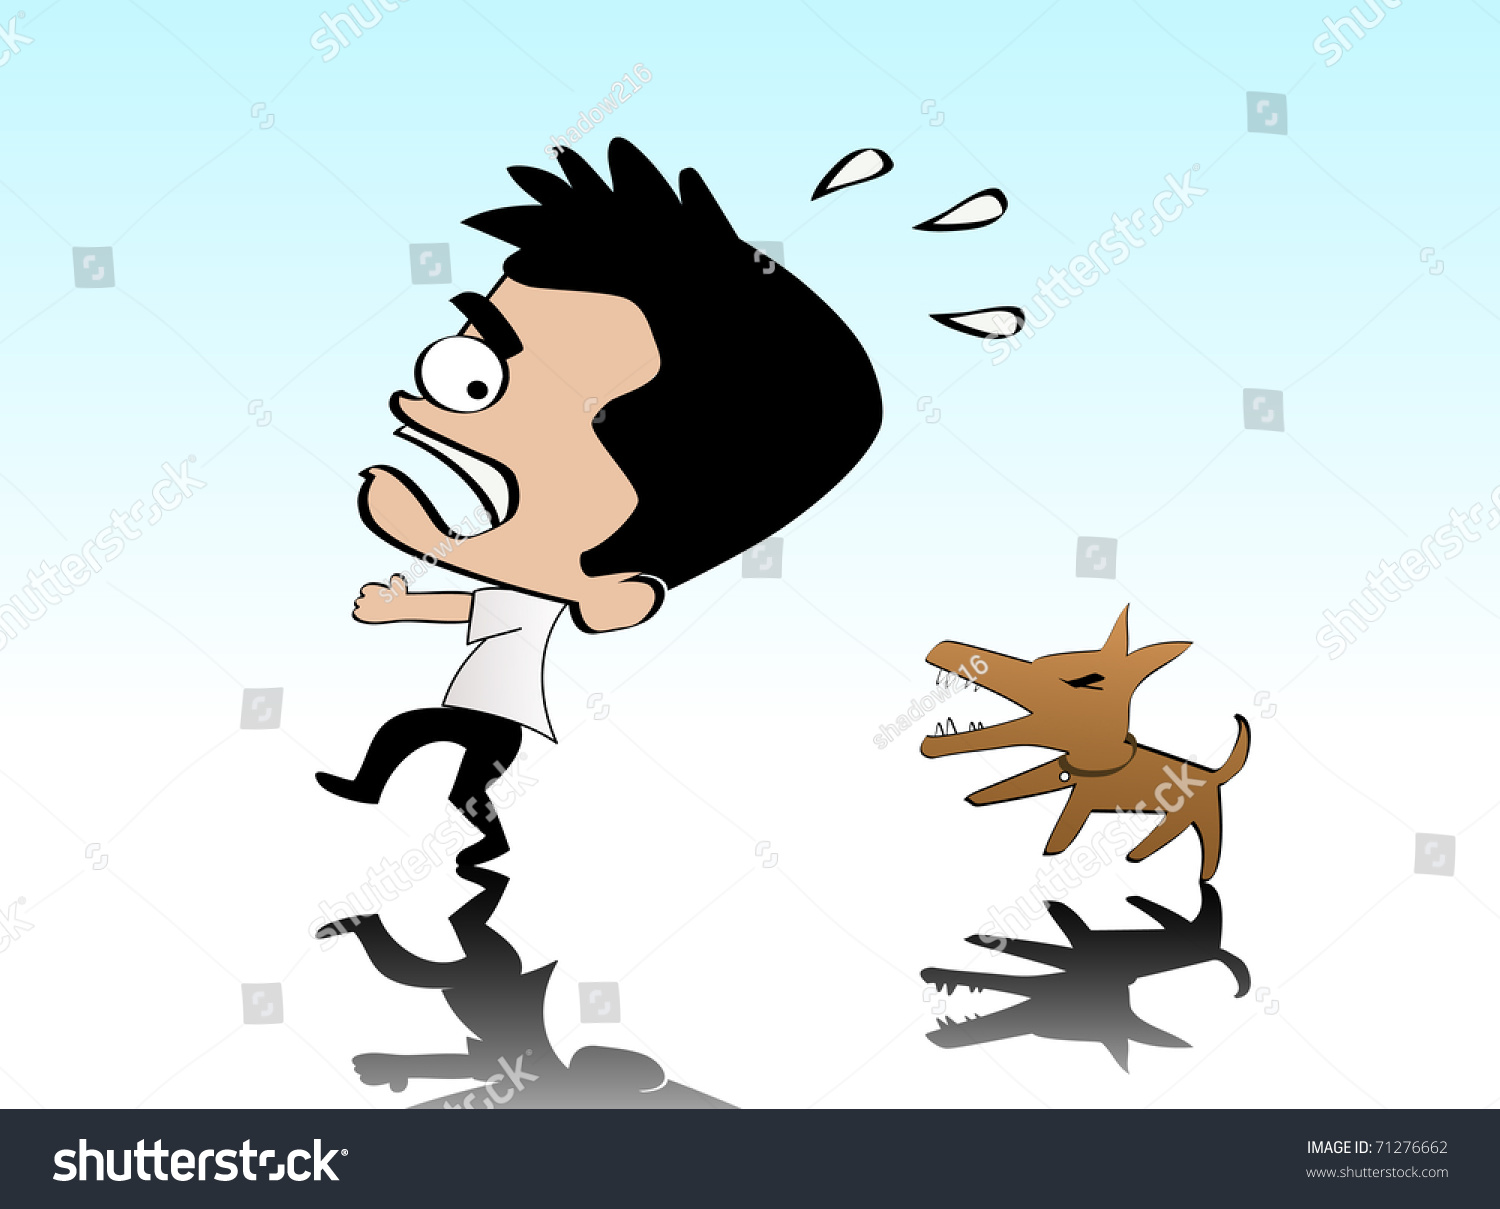 Illustration Of A Man Being Chased By A Dog 71276662